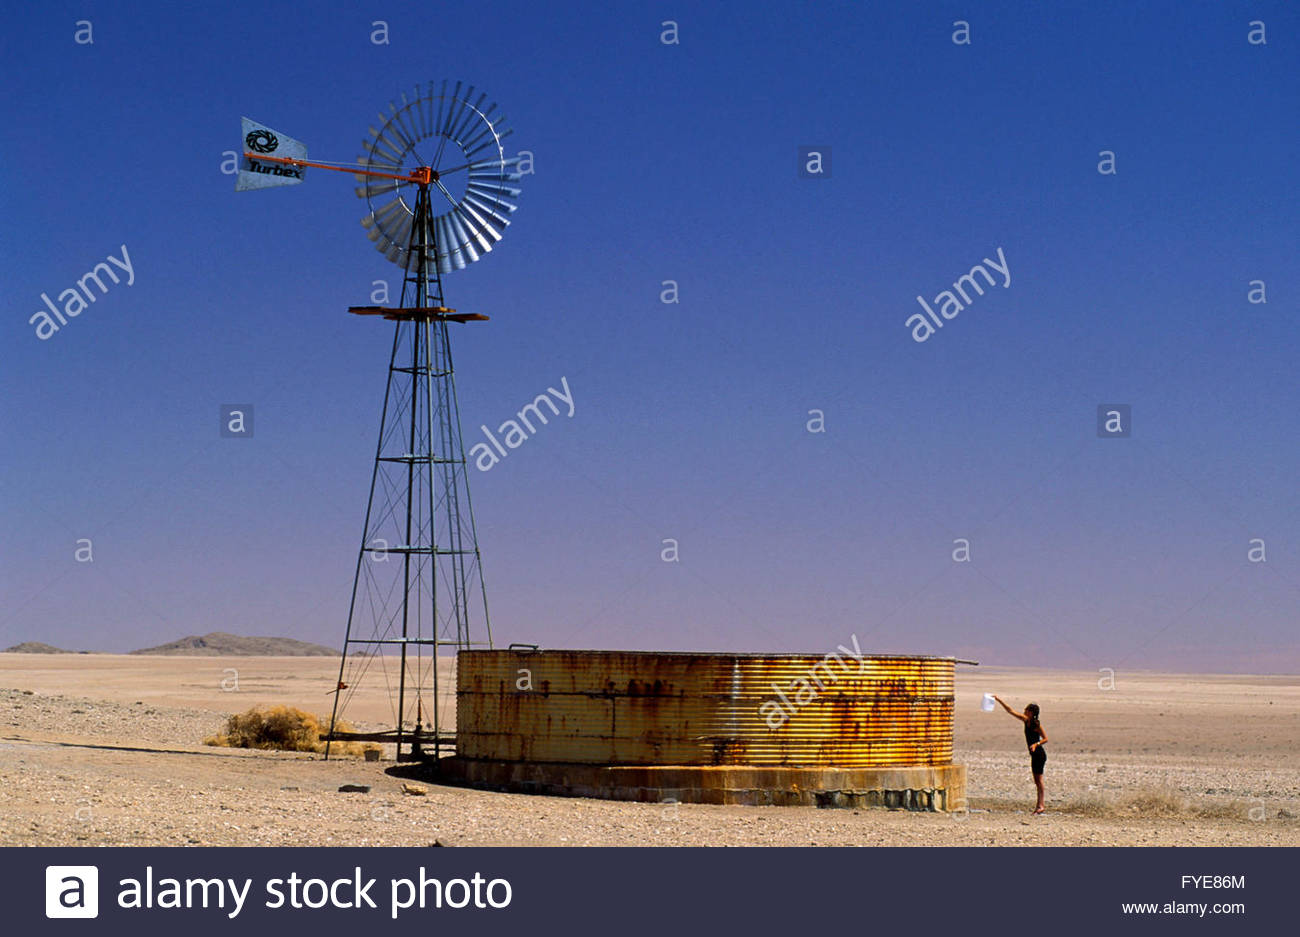 Water pumping windmill in Namib desert, Naukluft - Stock Image